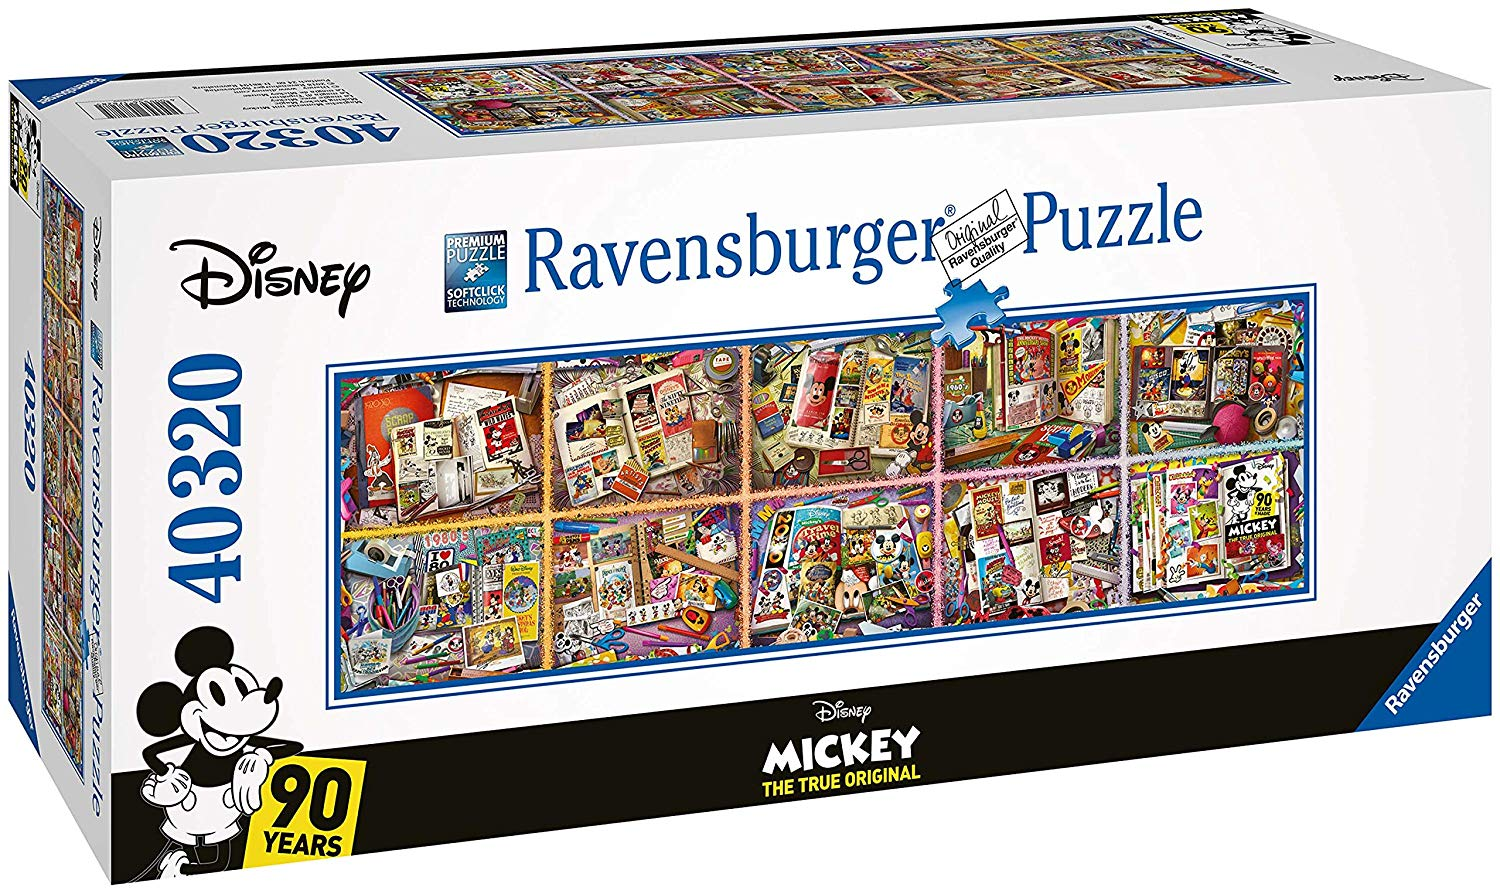 Ravensburger Puzzle Mickey amazon